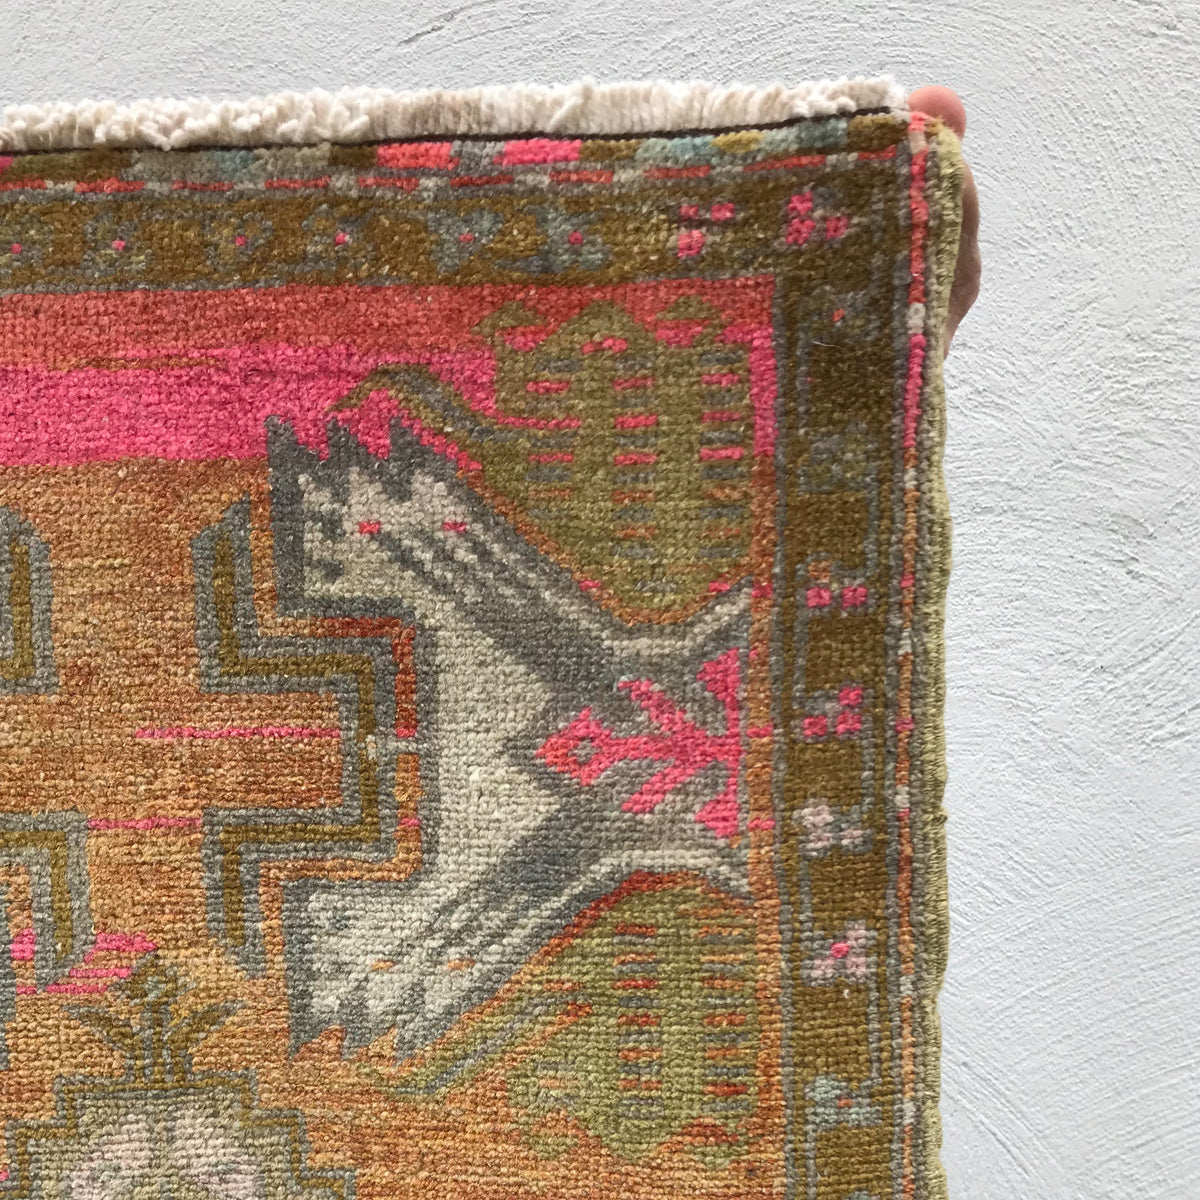 This small handwoven vintage Turkish rug has gorgeous color! Great for entryways, bathrooms, kitchens and layering. 20x38 inches.